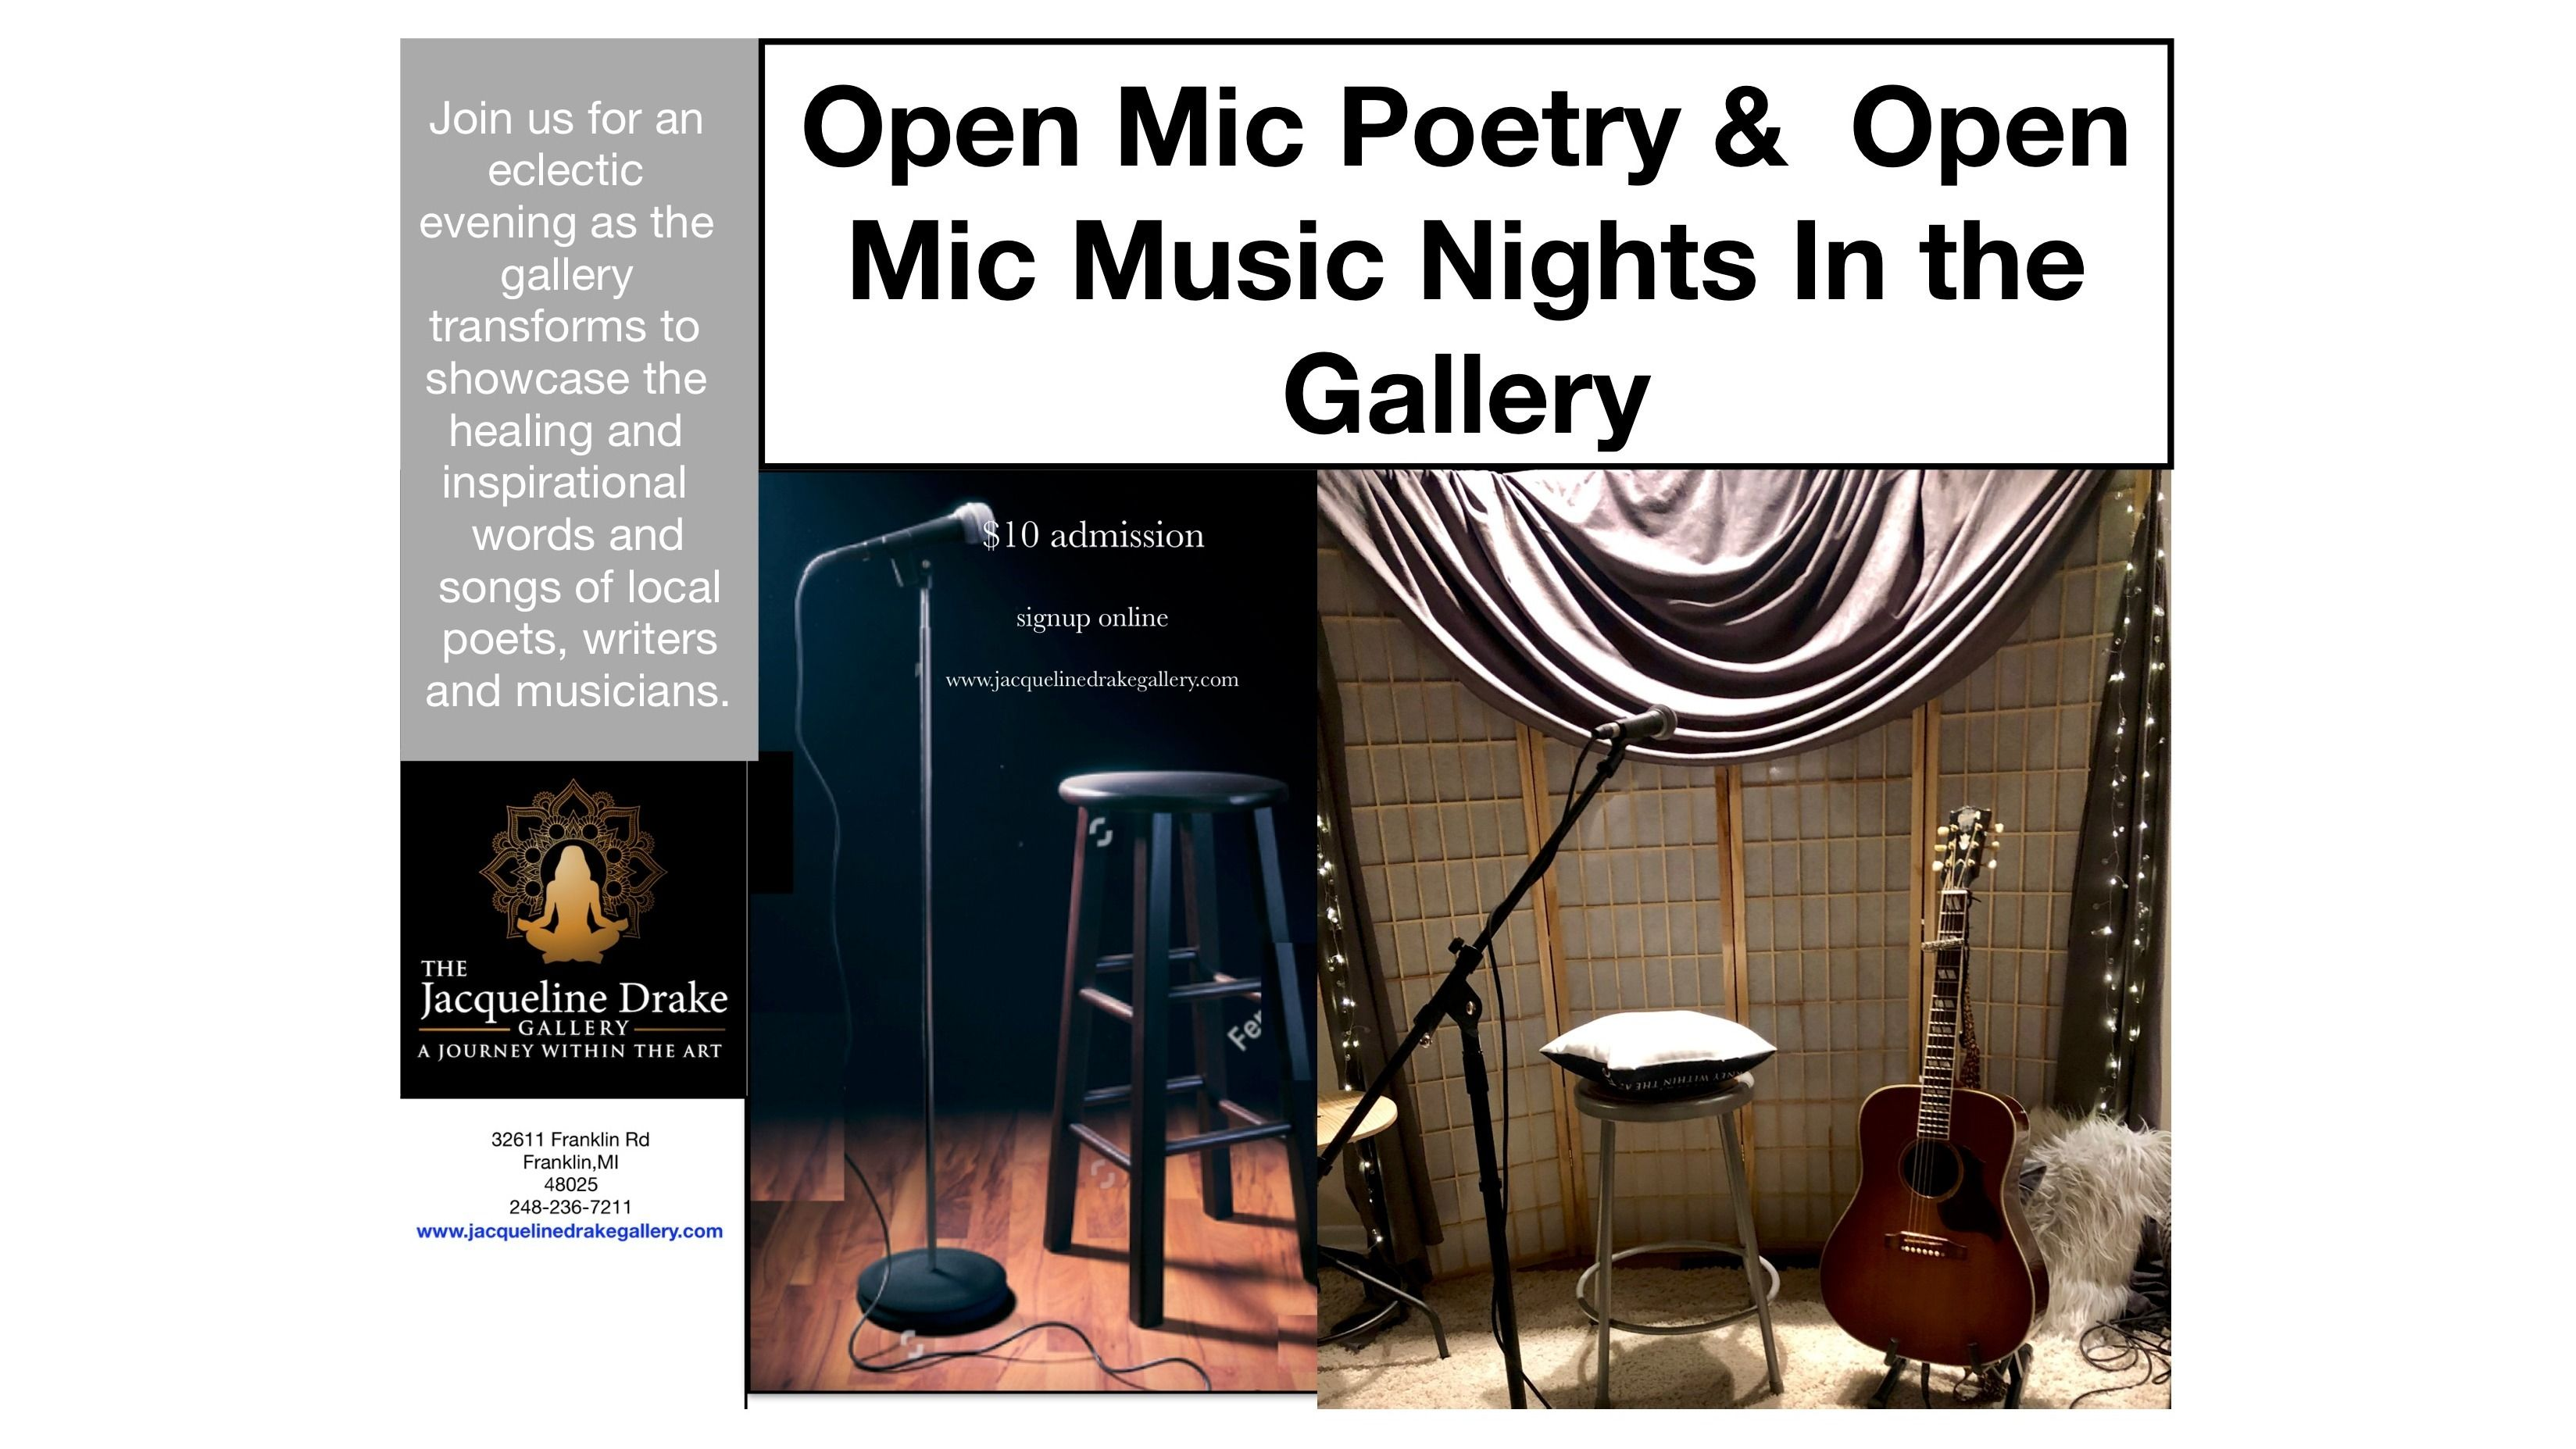 Open Mic Music Night In The Jacqueline Drake Gallery - A Journey